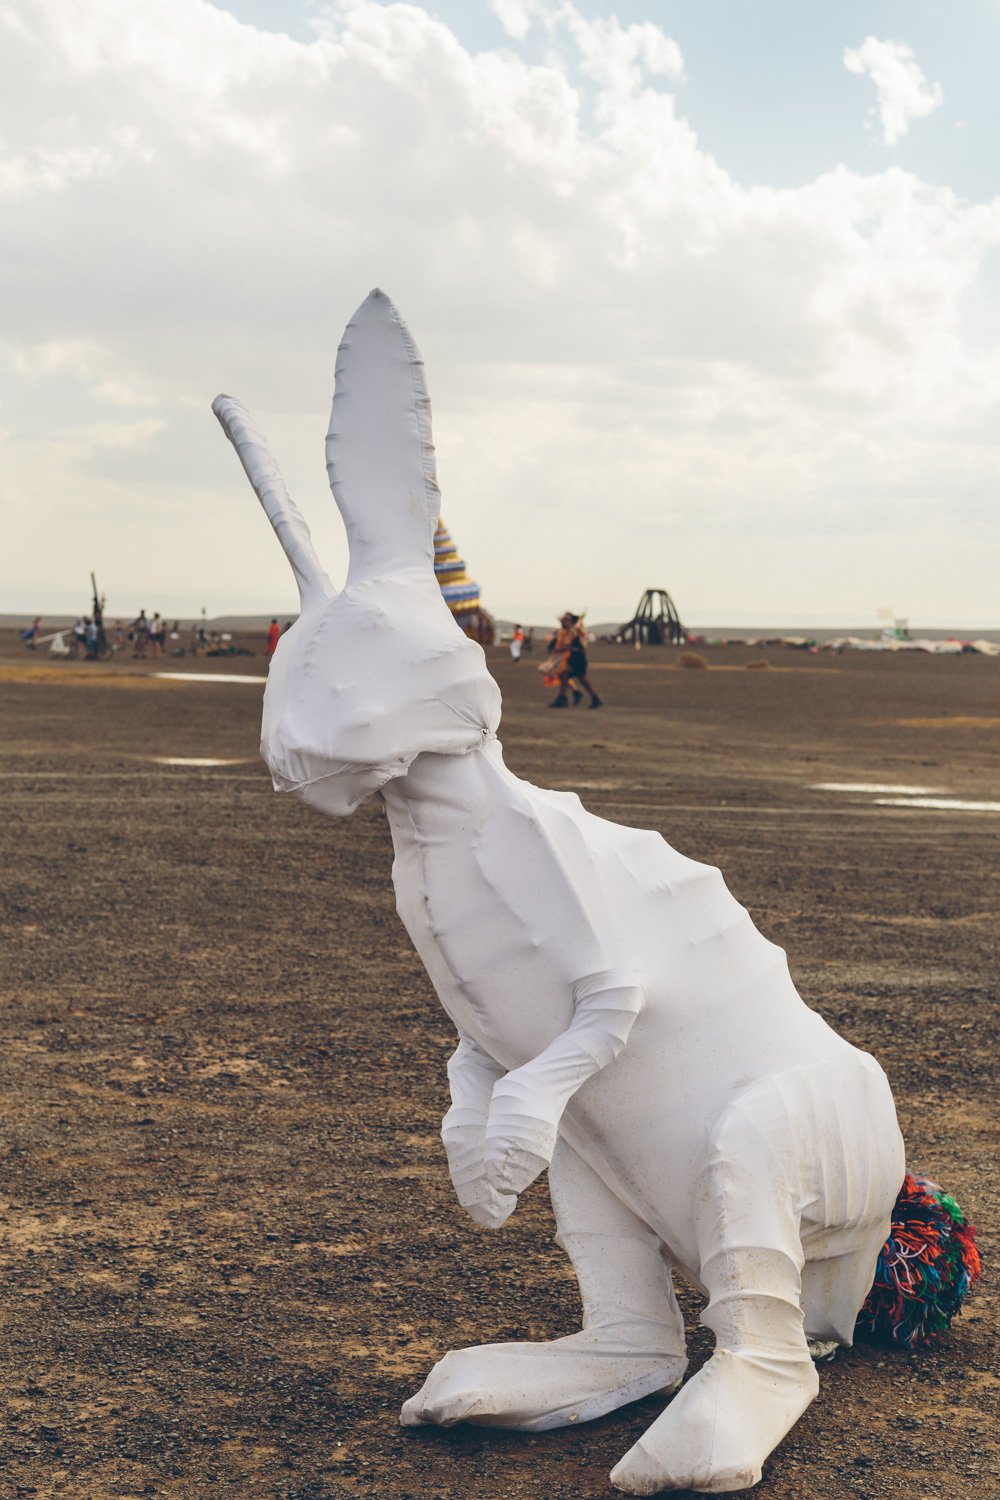 AfrikaBurn - Play